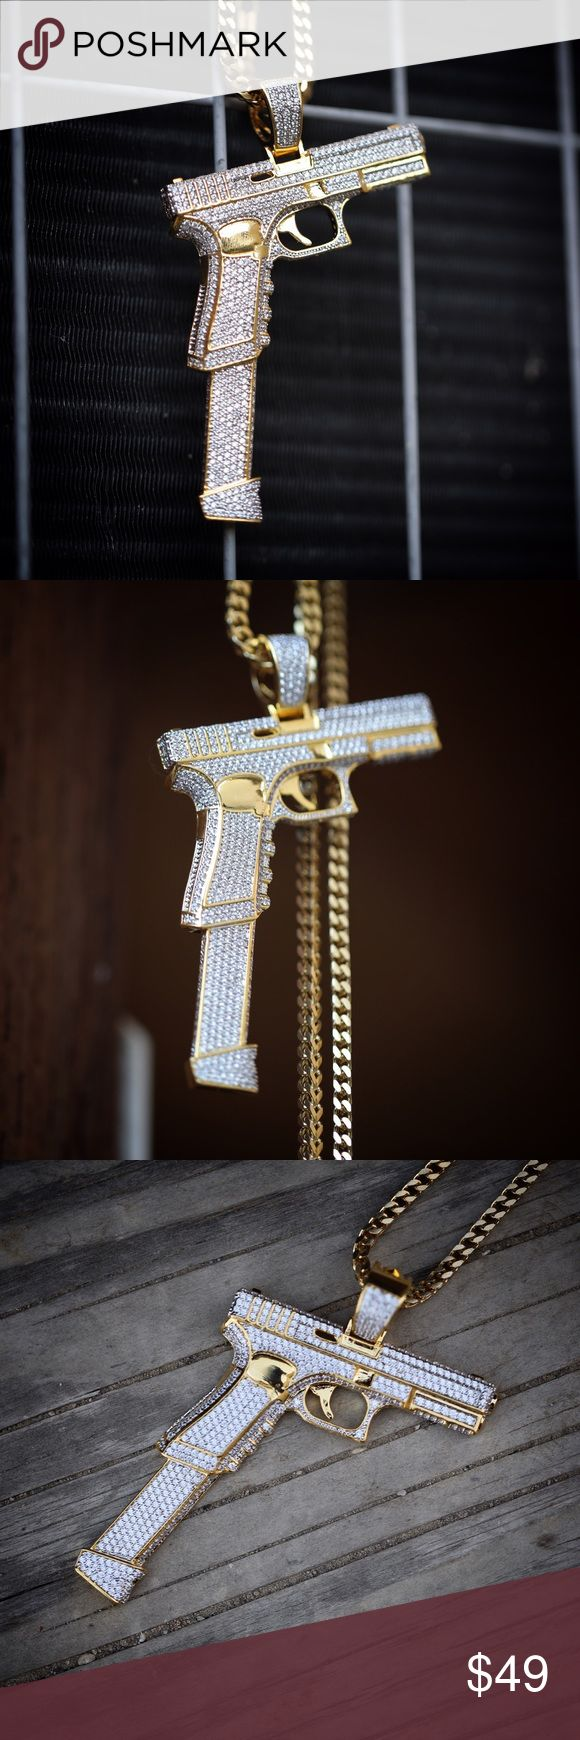 Large Hand Gun Pendant Necklace Large 14k Gold Plated Hand Gun Pendant With 30 Inch Franco Chain Necklace Large size hand gun pistol pendant is 3 inches in length. Fully iced out with white lab simulated diamonds. Chain is 14k gold plated over 316 stainless steel. Comes with a 3mm width 30 inch length franco chain. TSV Jewelers Accessories Jewelry